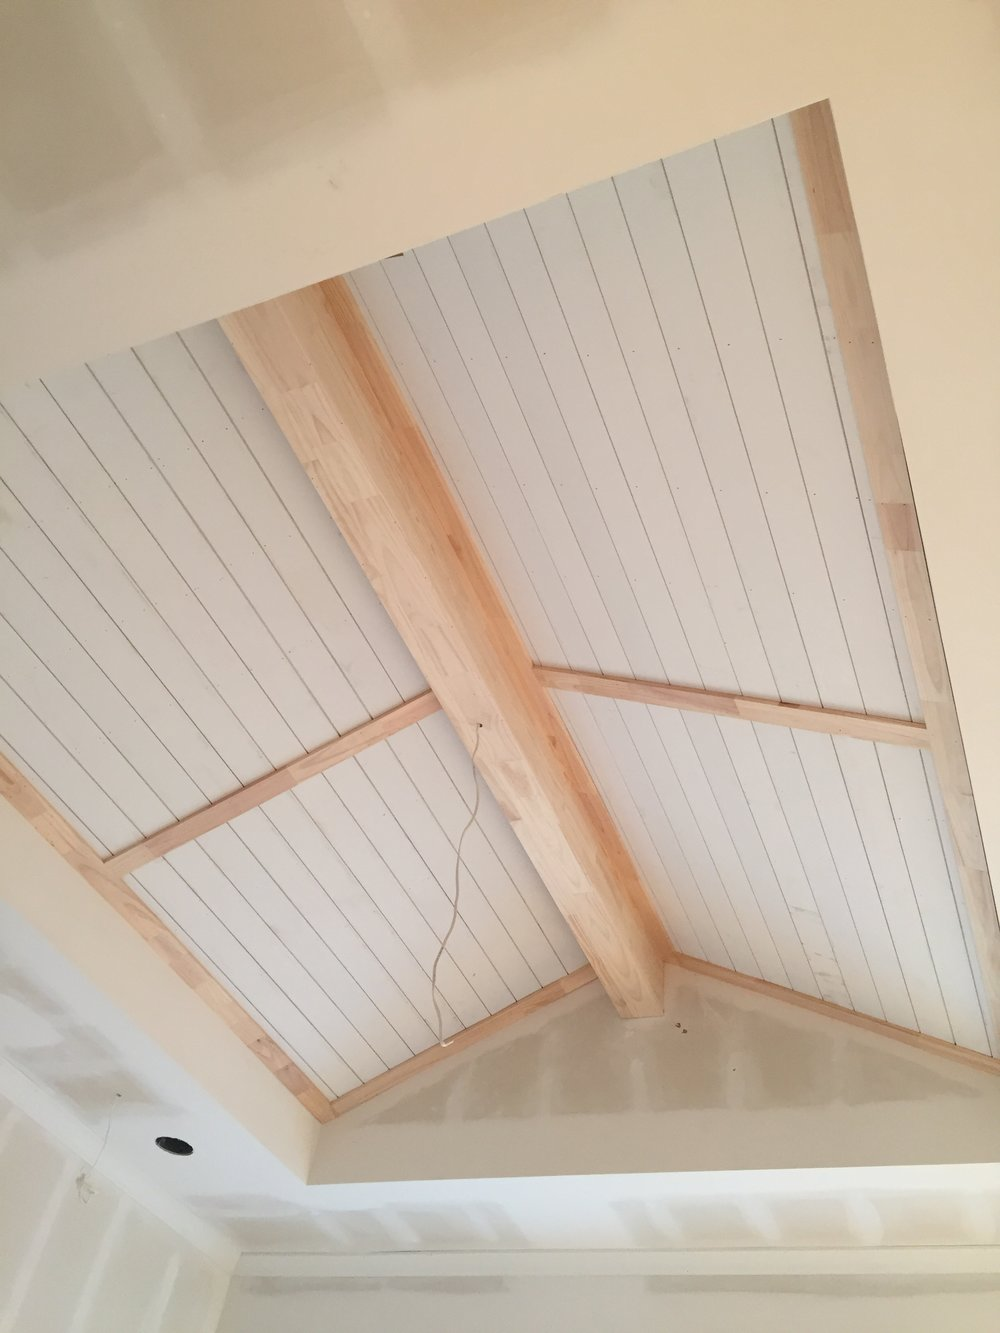 Master bedroom ceiling detail